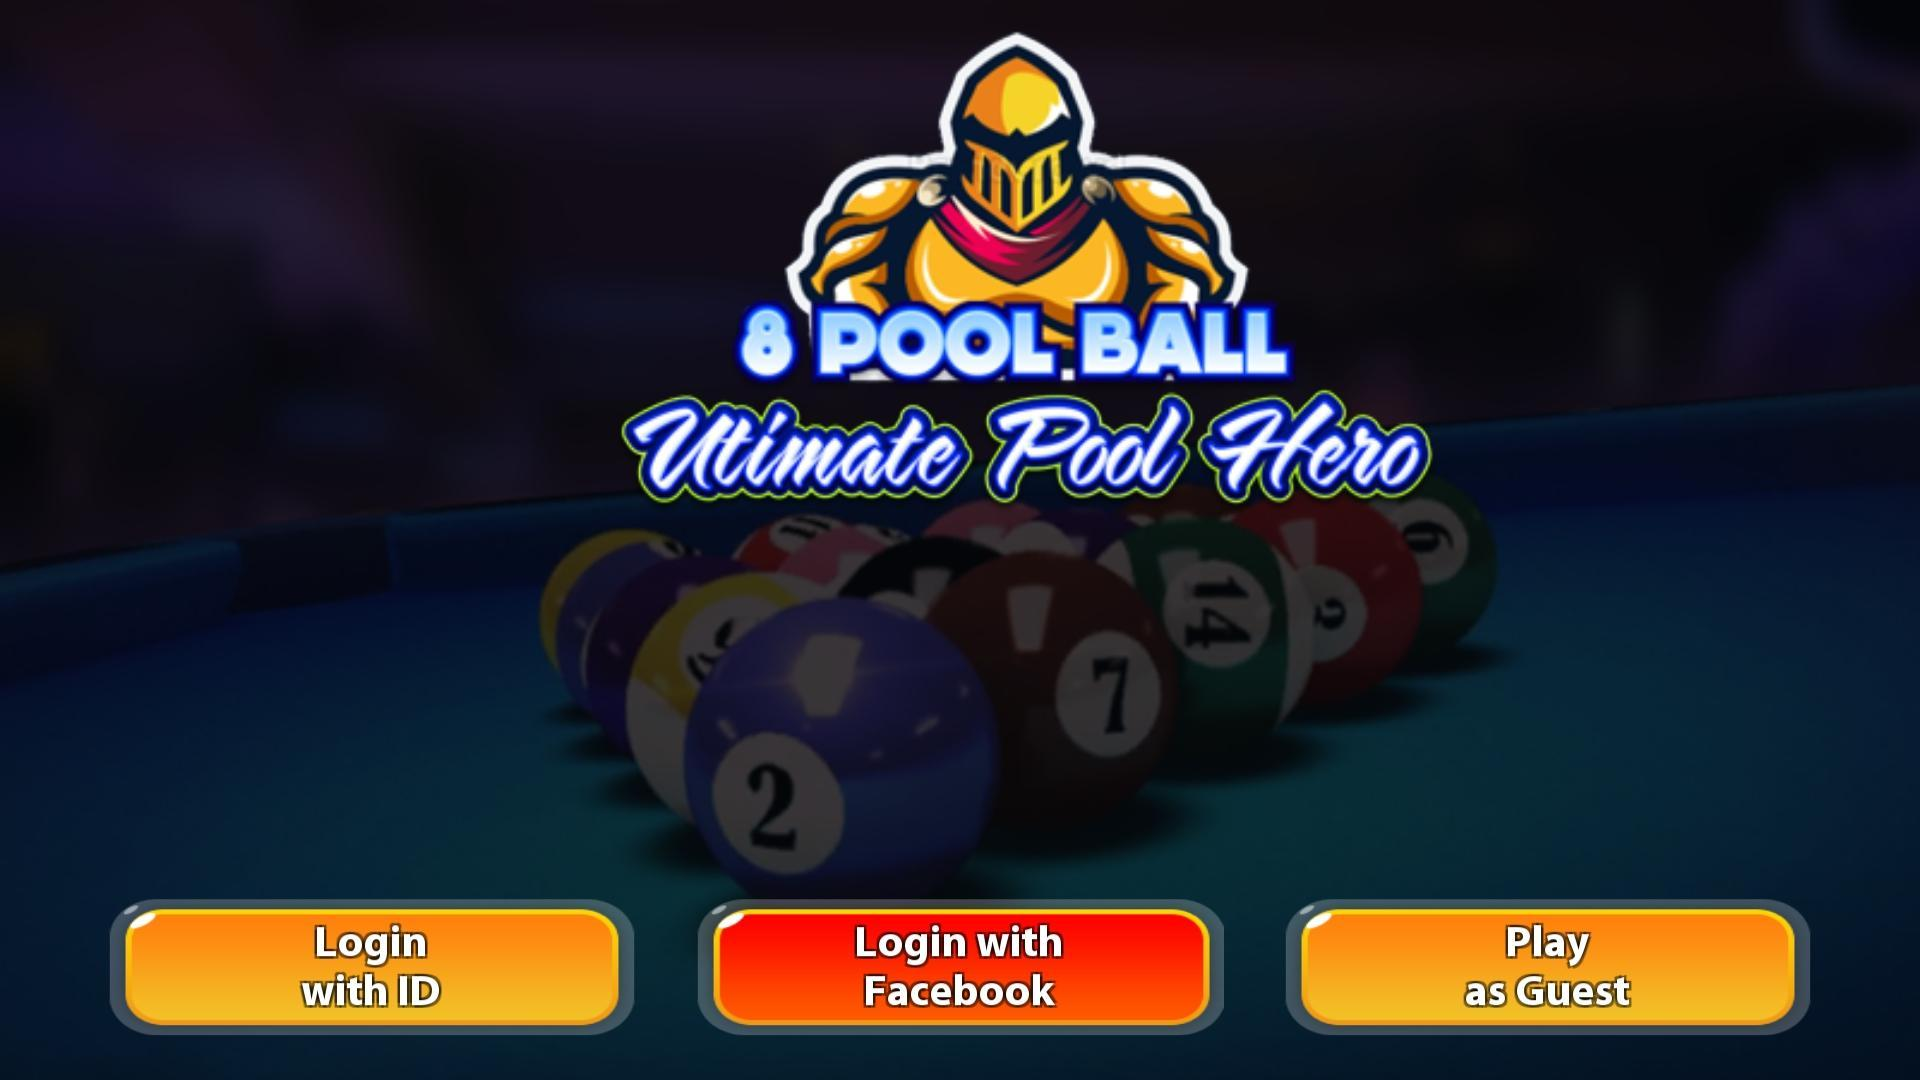 8 Pool Ball Ultimate Pool Hero For Android Apk Download